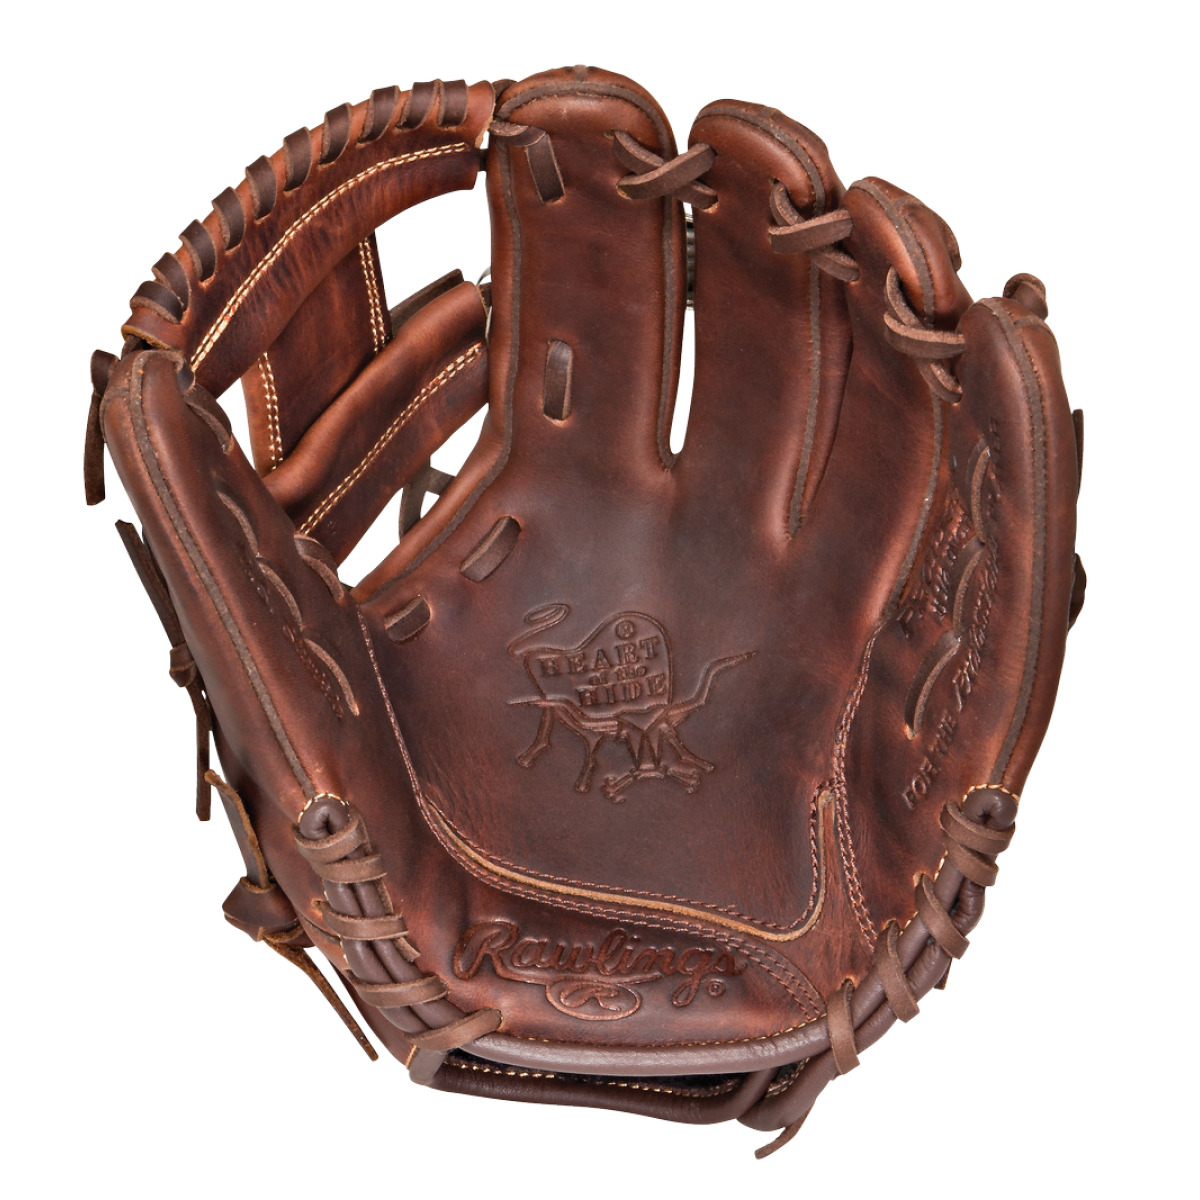 Clipart of baseball glove clipart transparent download Baseball glove PNG clipart transparent download